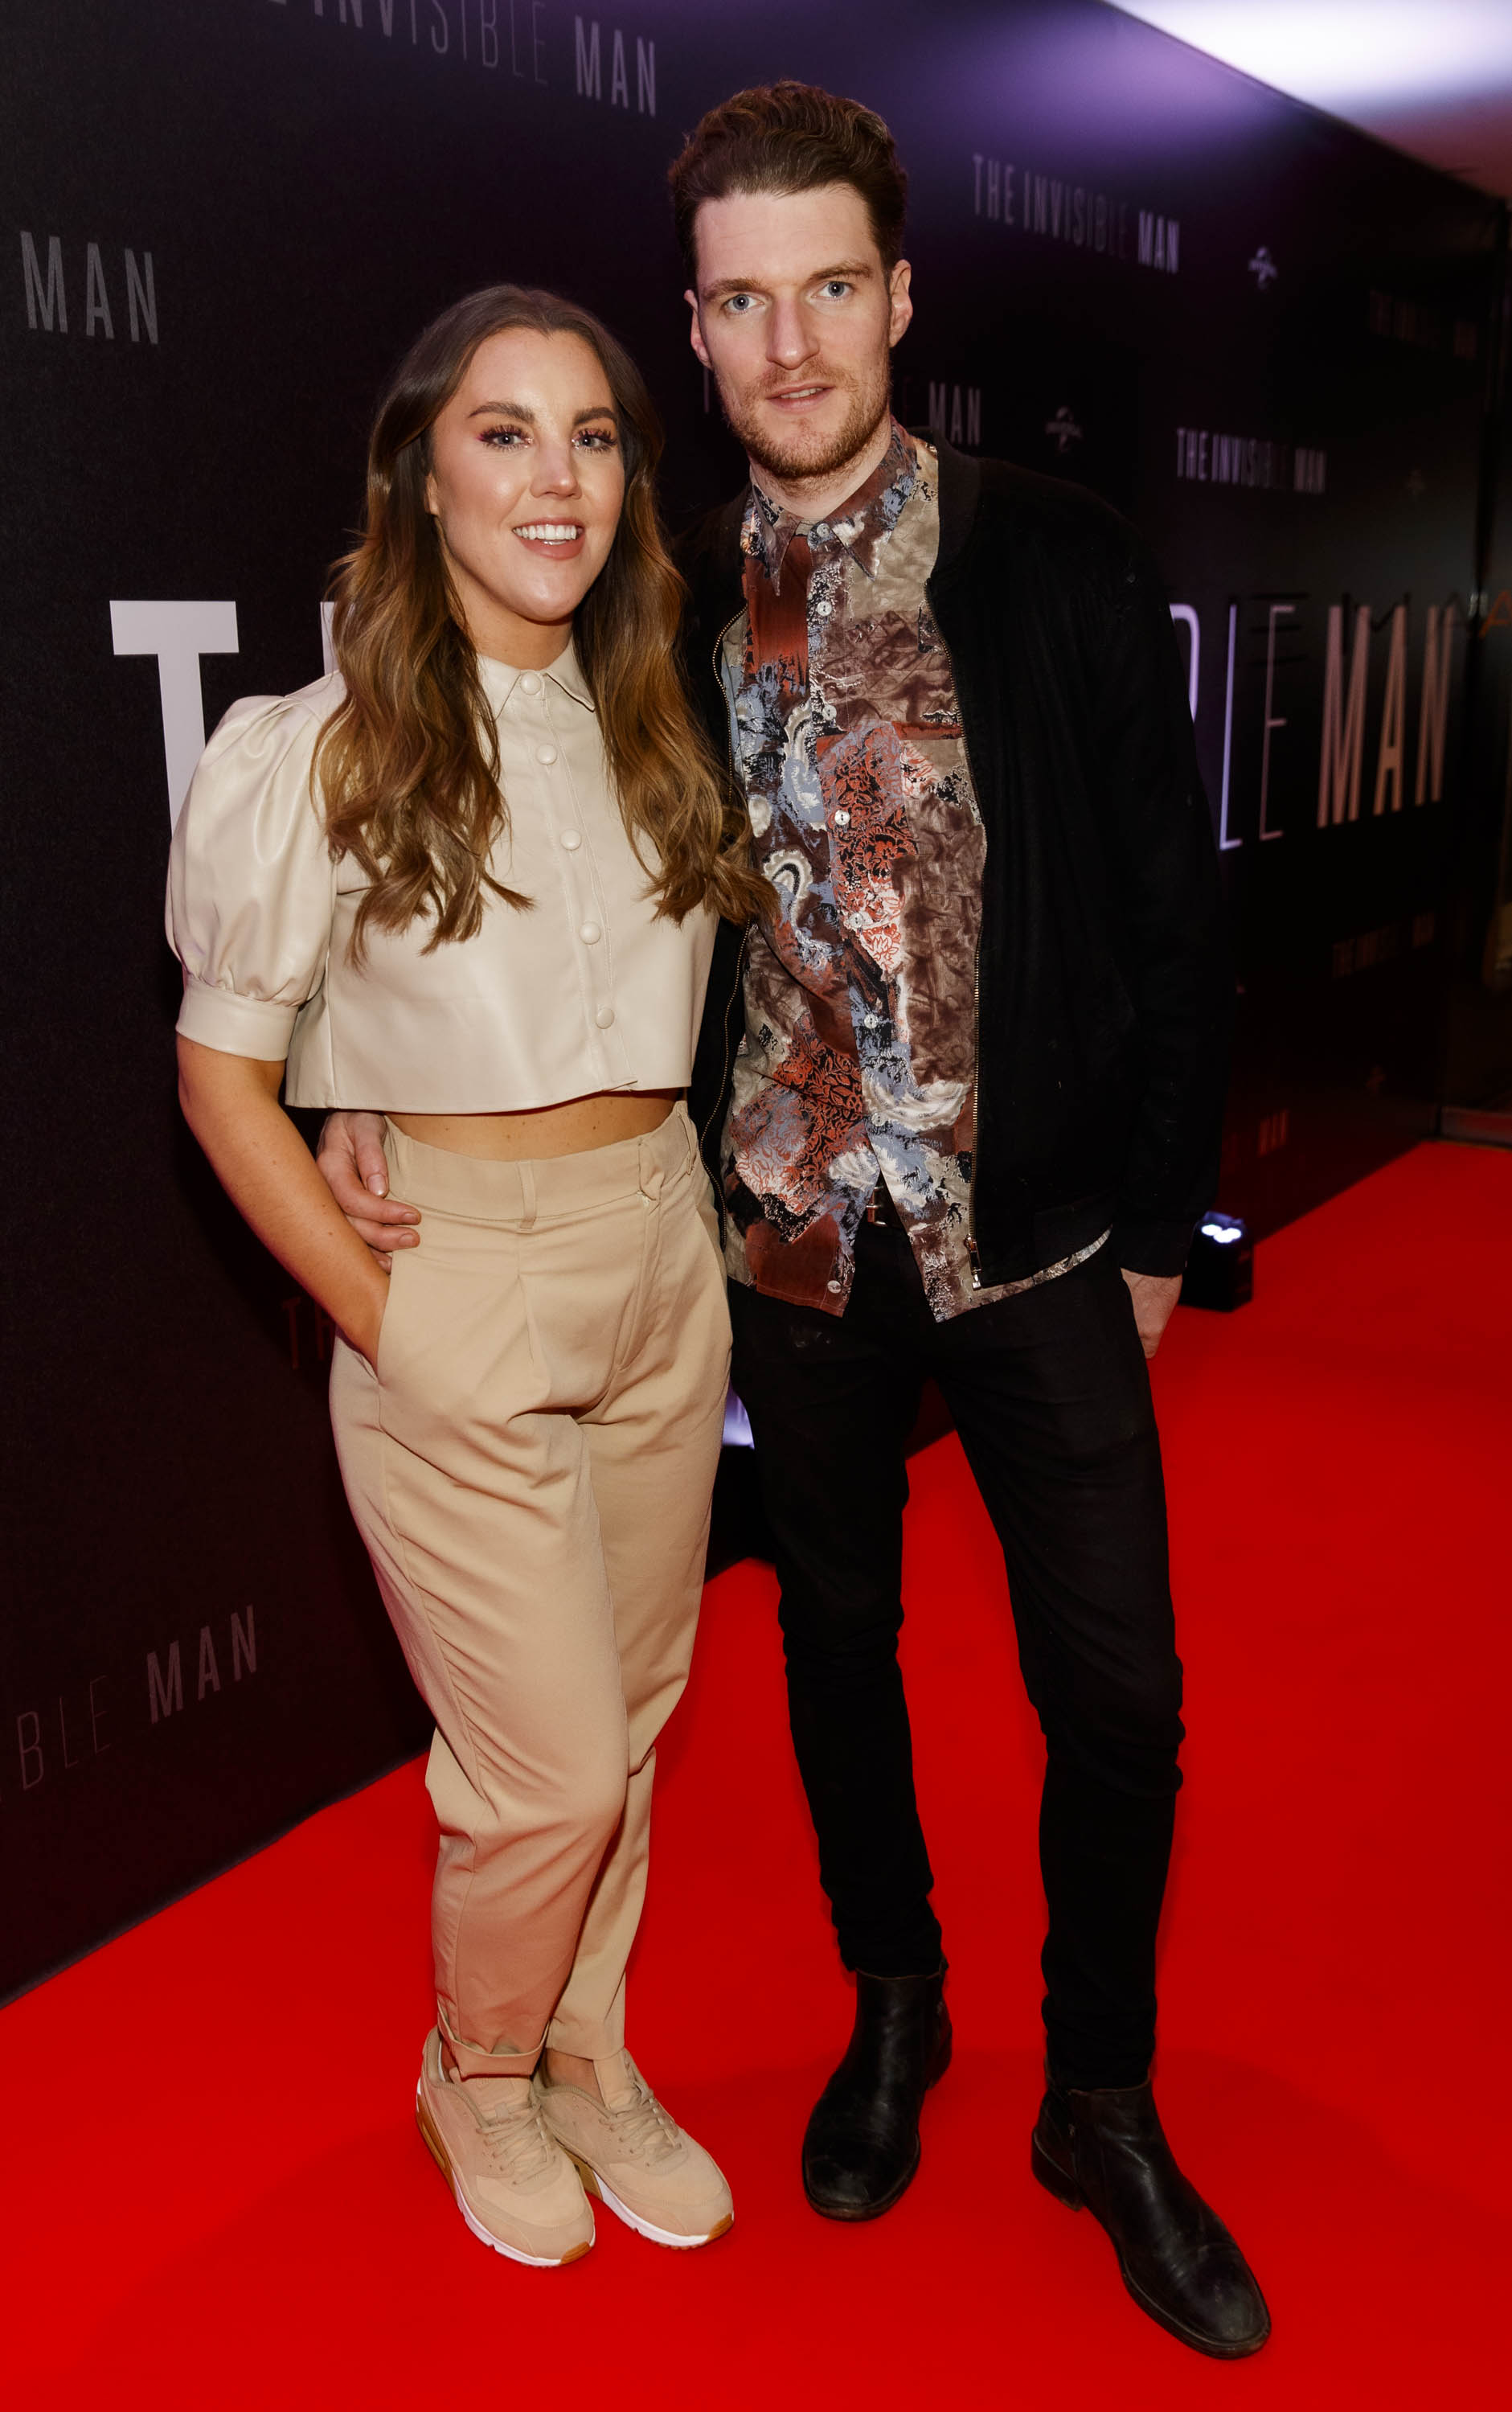 Sarah Hanrahan and Sean McNamee pictured at a special preview screening of The Invisible Man at Light House Cinema, Dublin. Picture: Andres Poveda